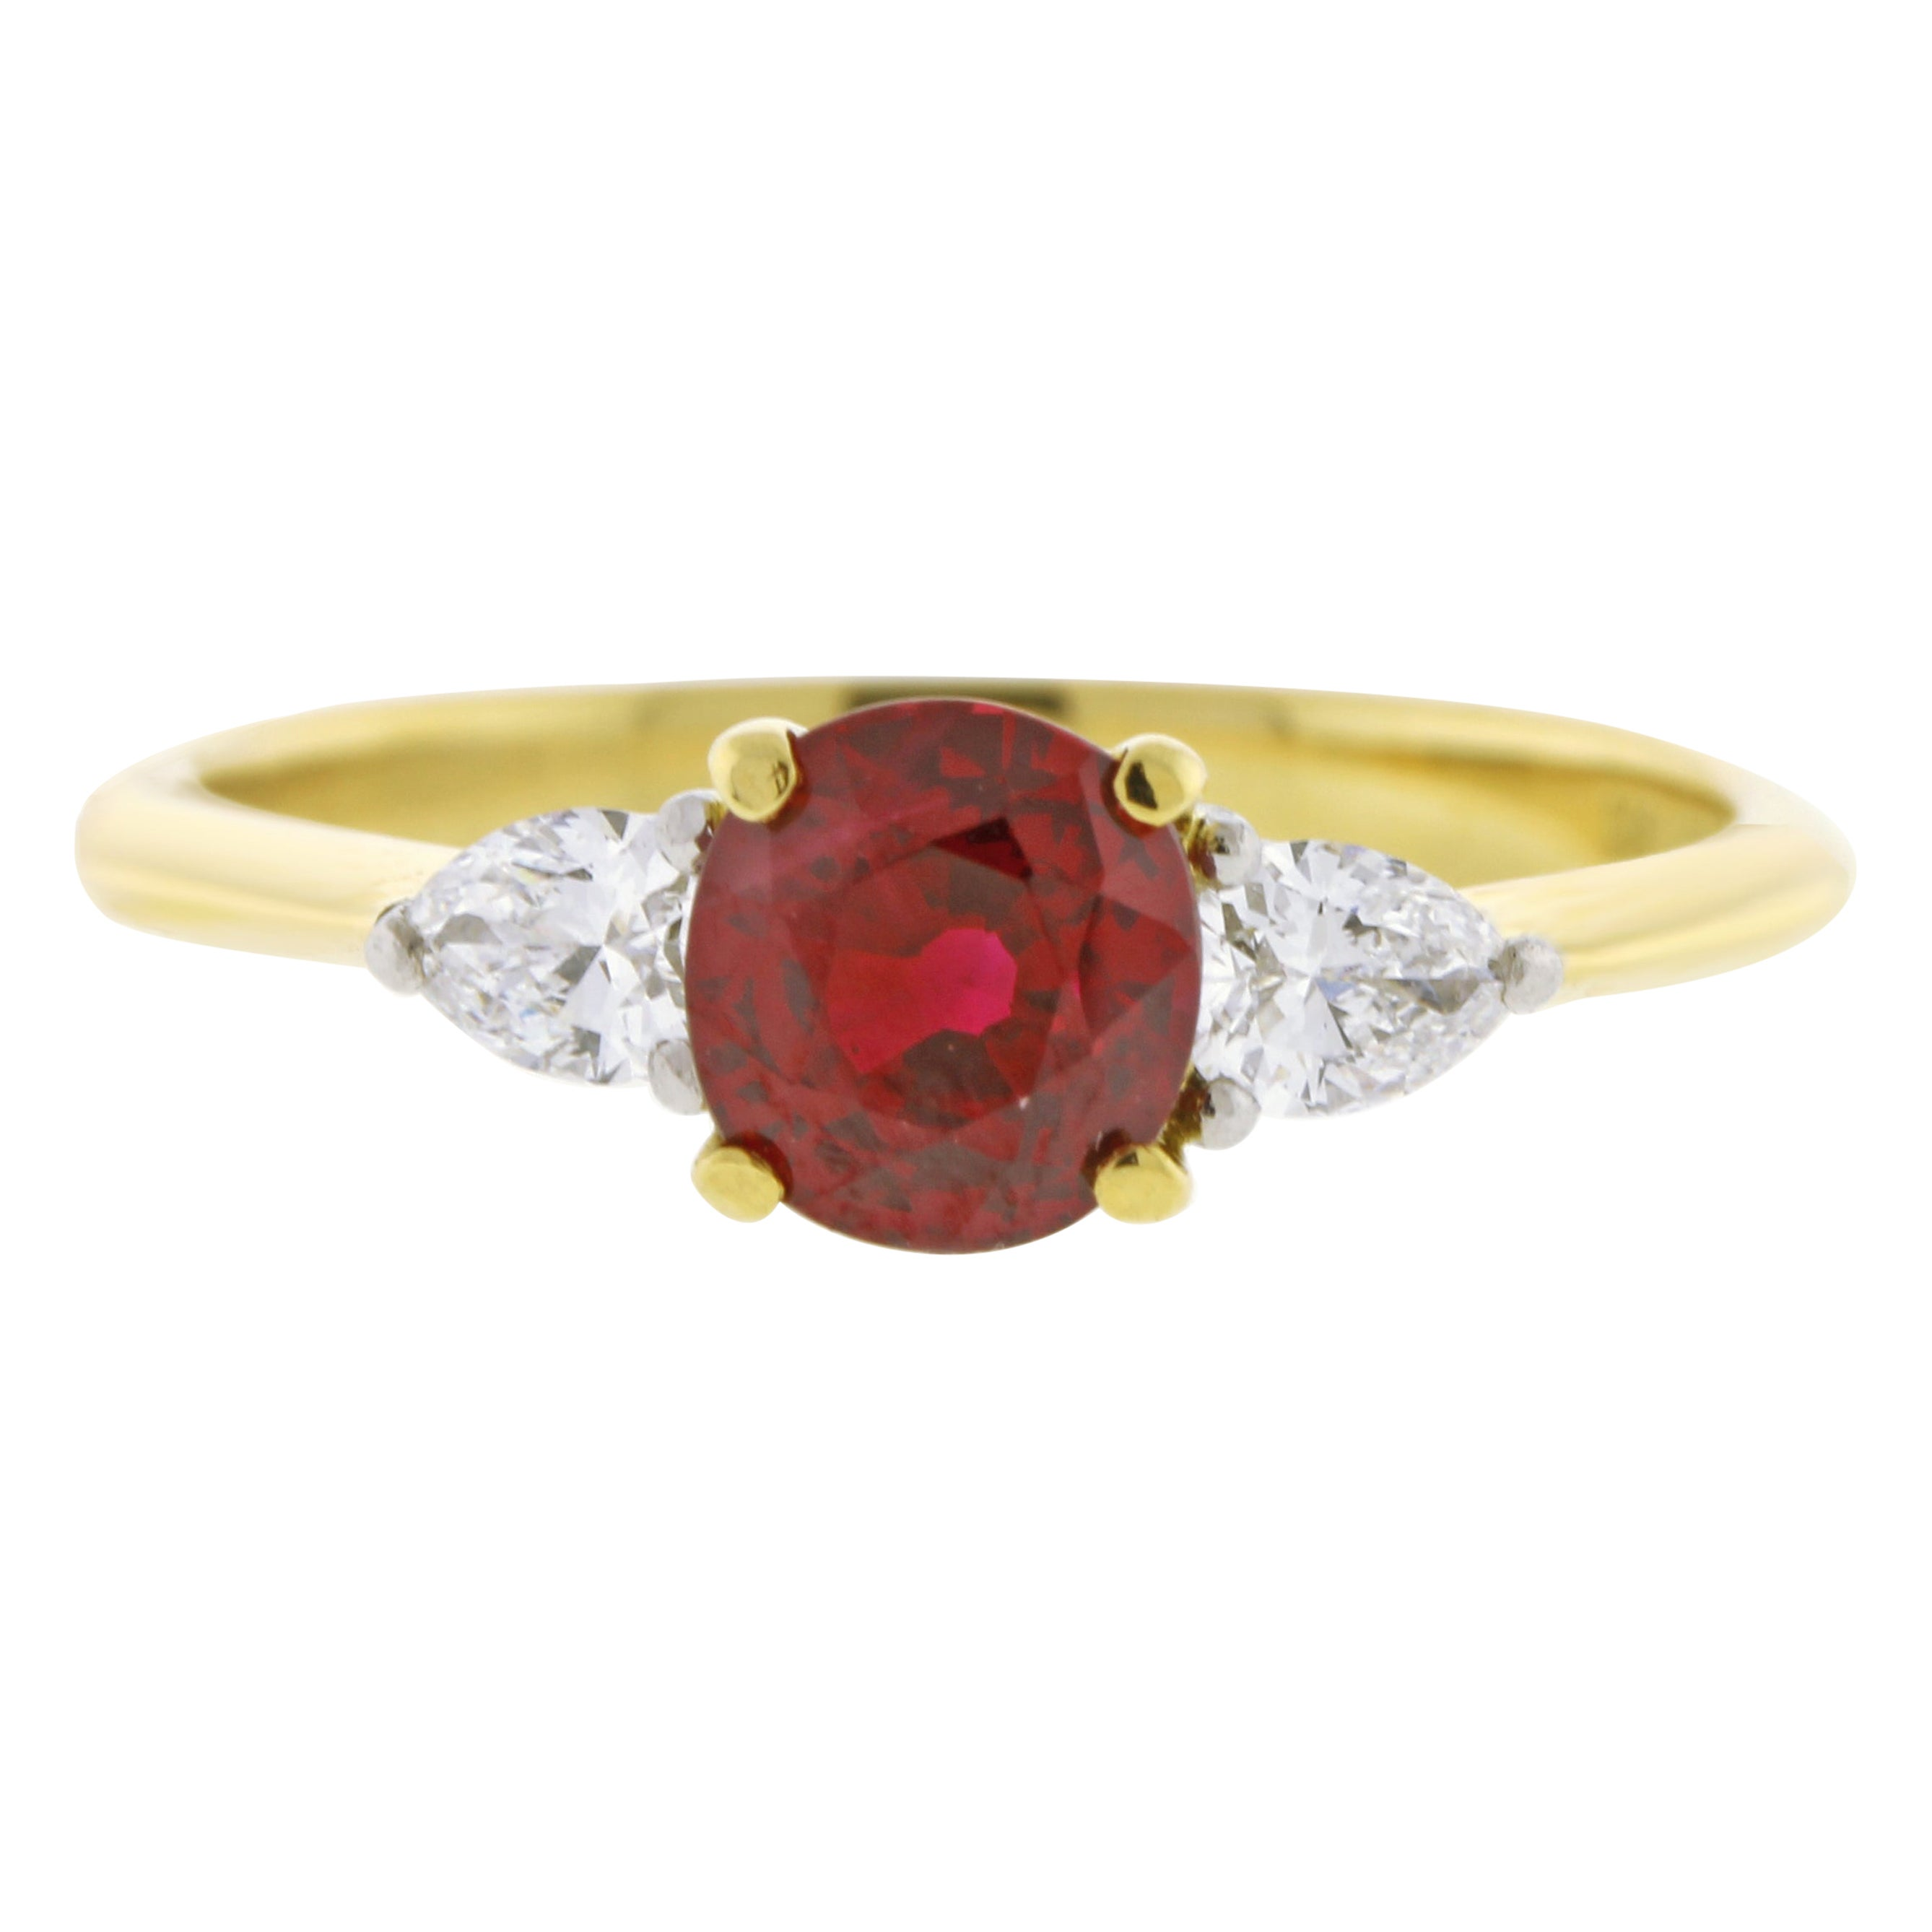 Tiffany & Co. Ruby and Daimond Three-Stone Ring